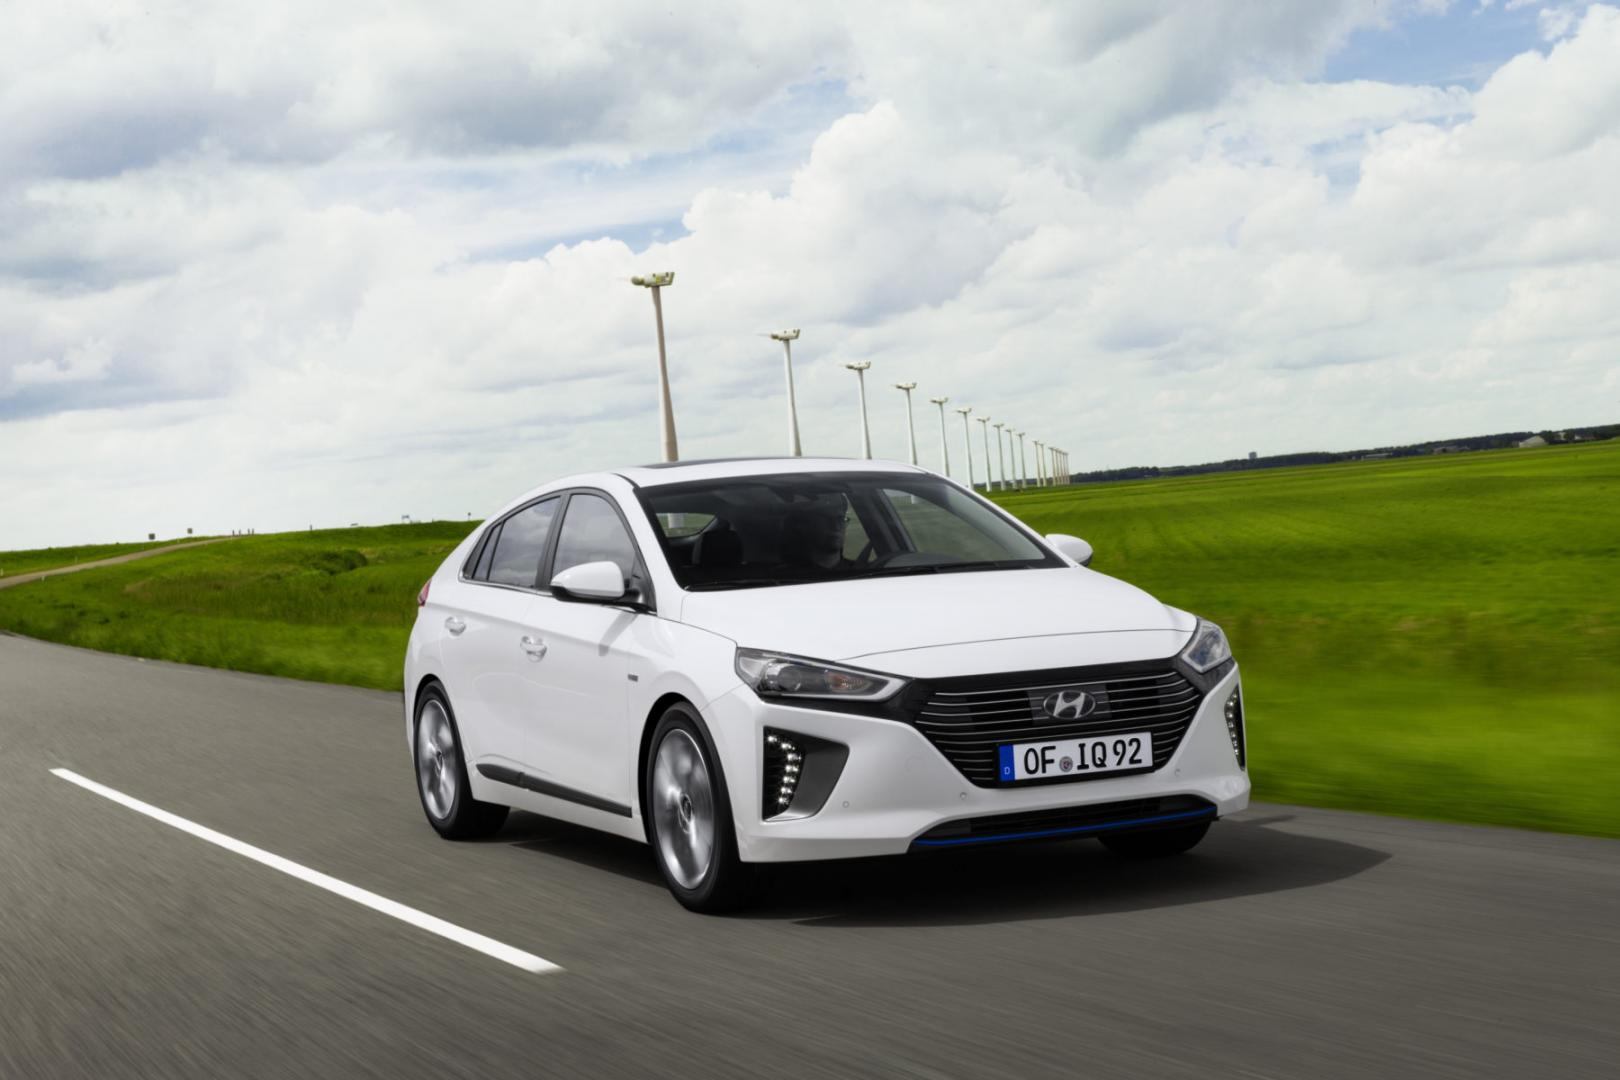 hyundai ioniq hybrid 2016 autotest en specificaties laatkomertje. Black Bedroom Furniture Sets. Home Design Ideas